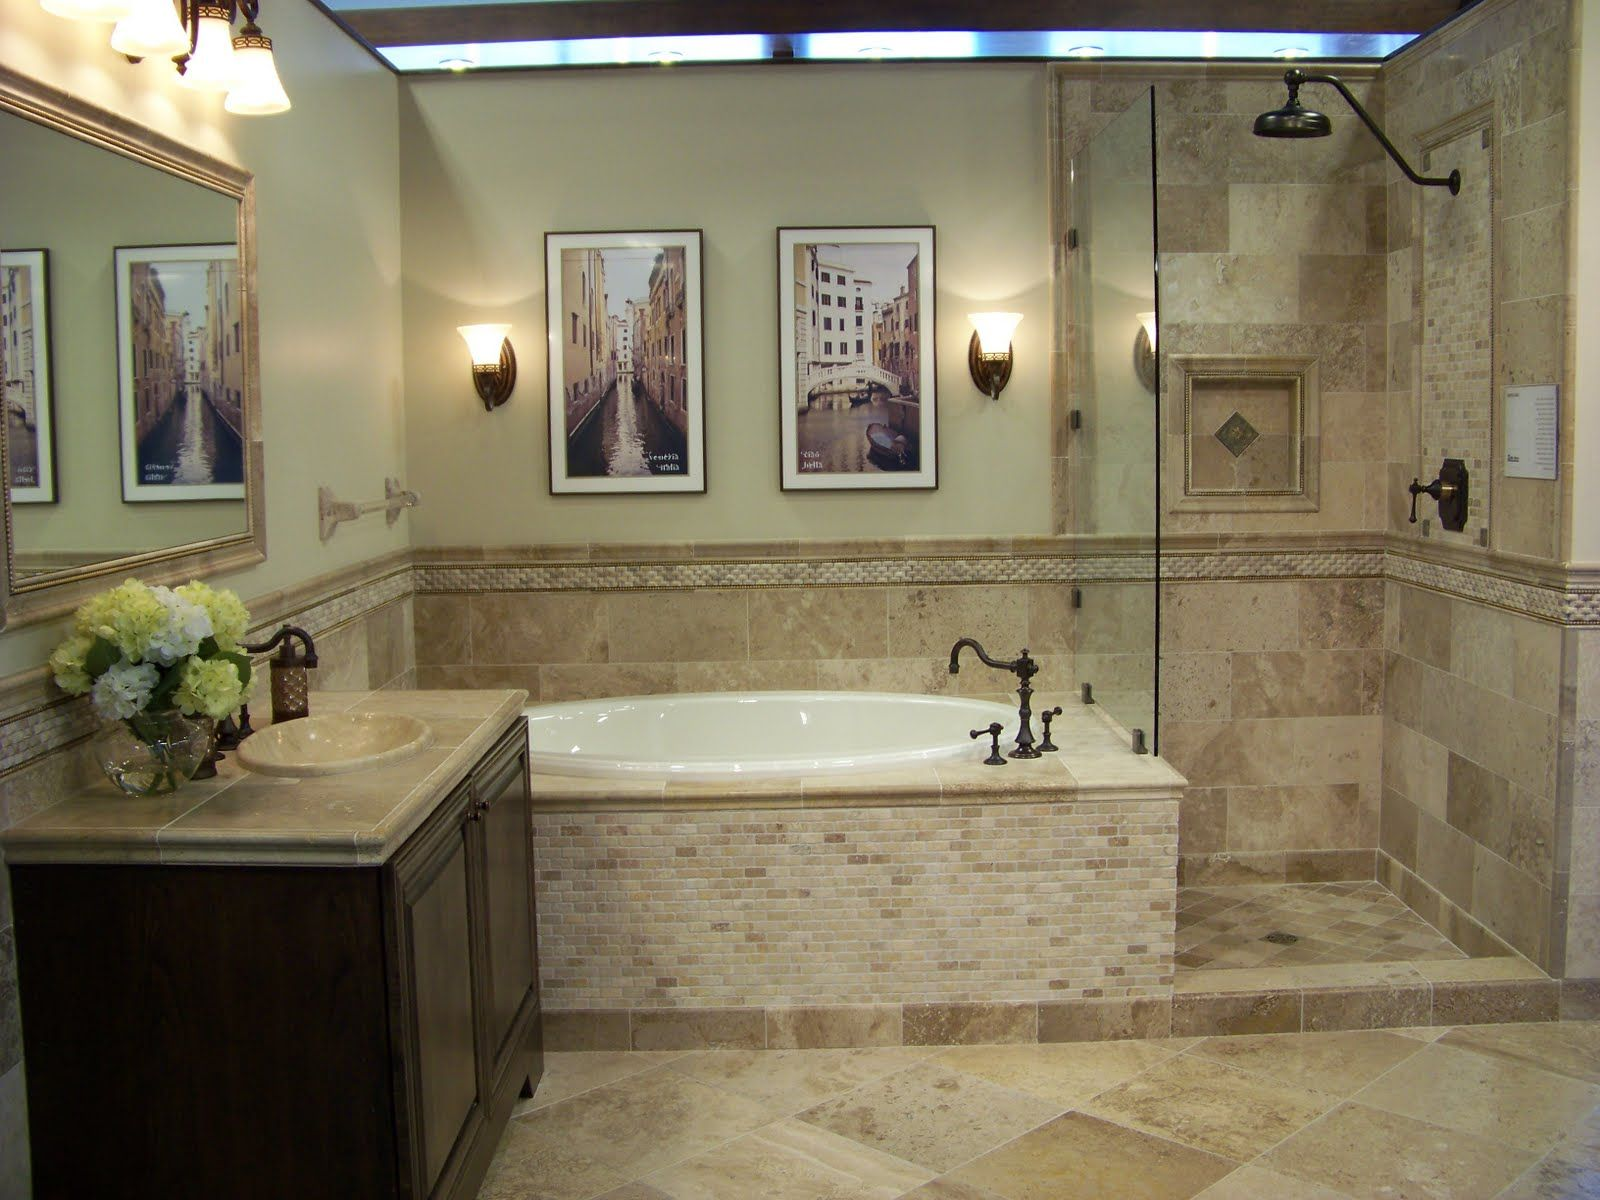 Travertine bathroom floor tile designs mixture of for Travertine tile bathroom gallery